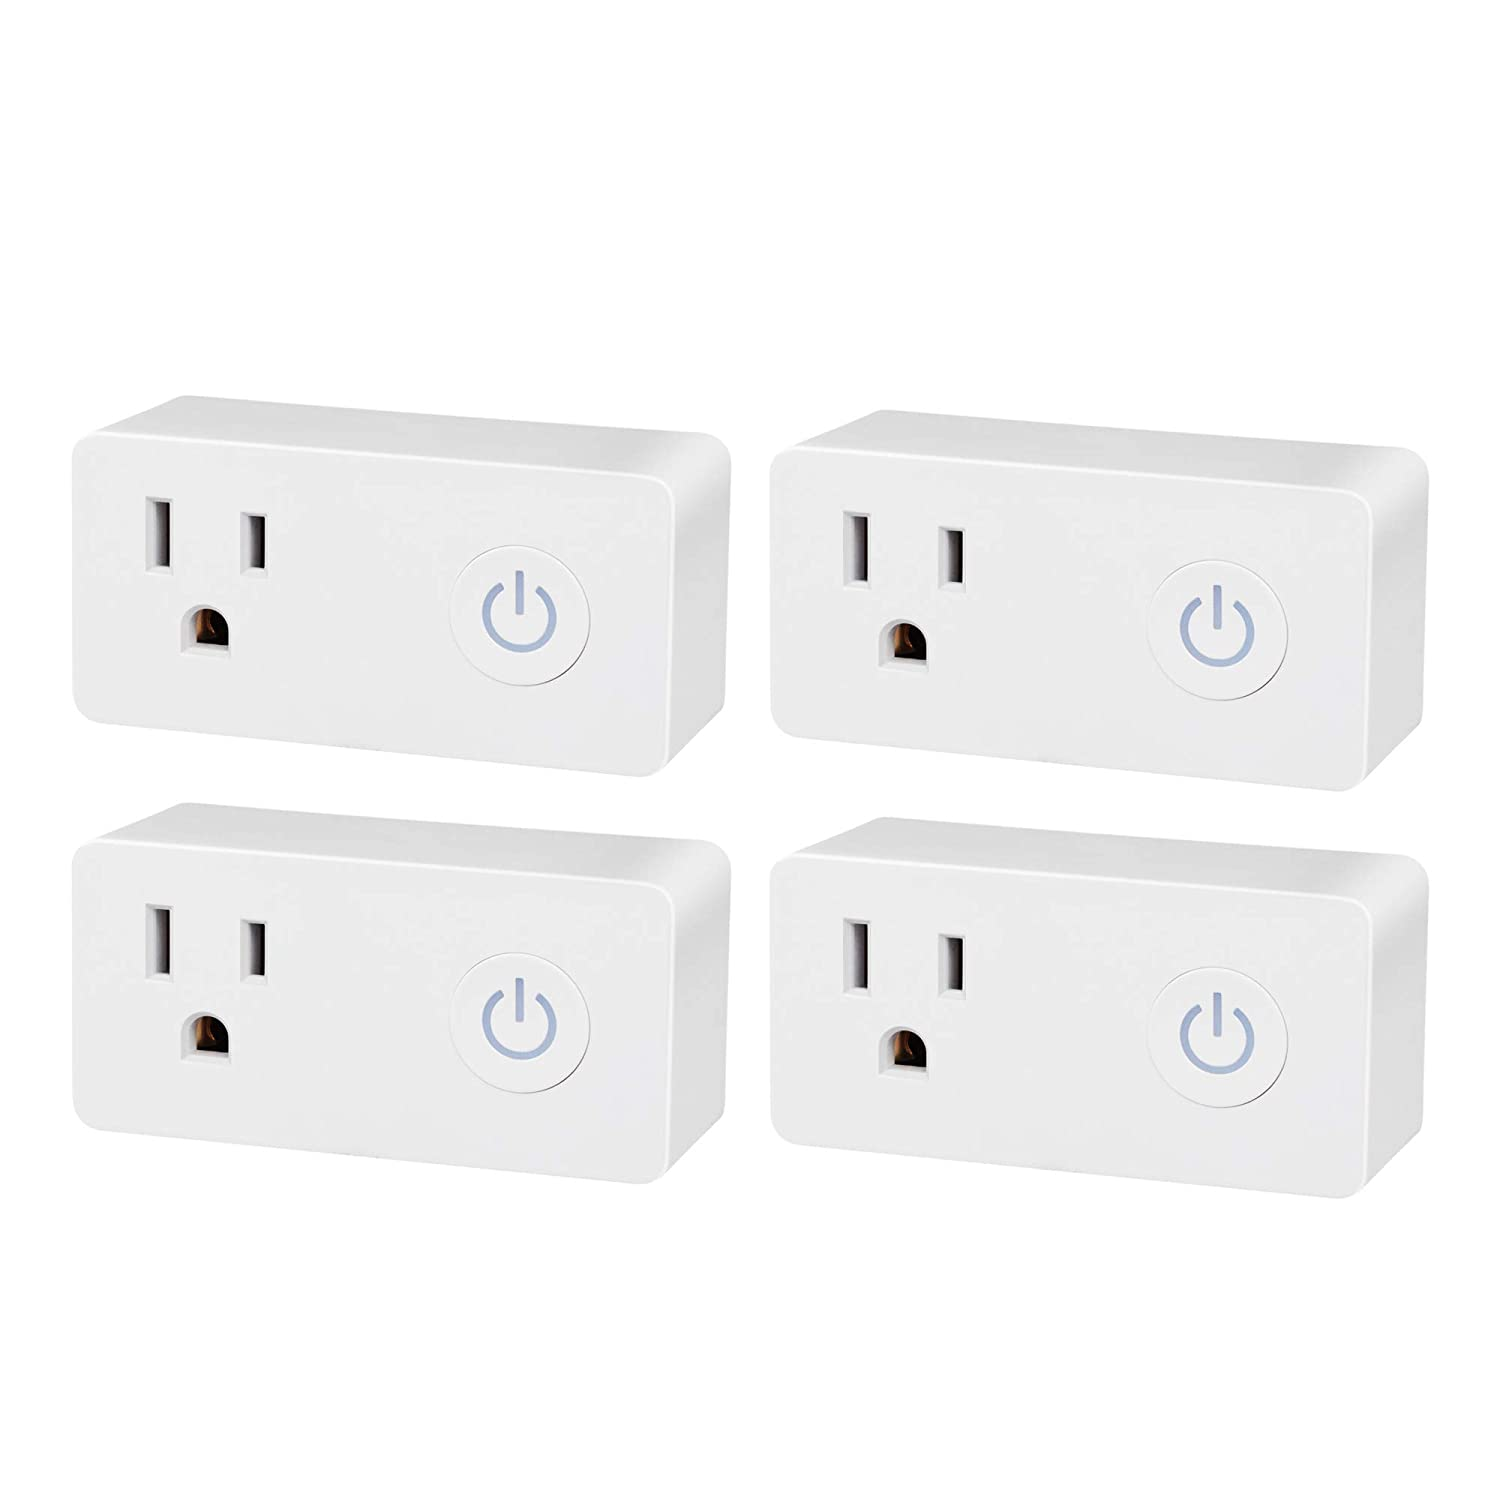 BN-LINK Smart WiFi Outlet, Hubless with Energy Monitoring and Timer Function, No Hub Required, White, Compatible with Alexa and Google Assistant (4-Pack)